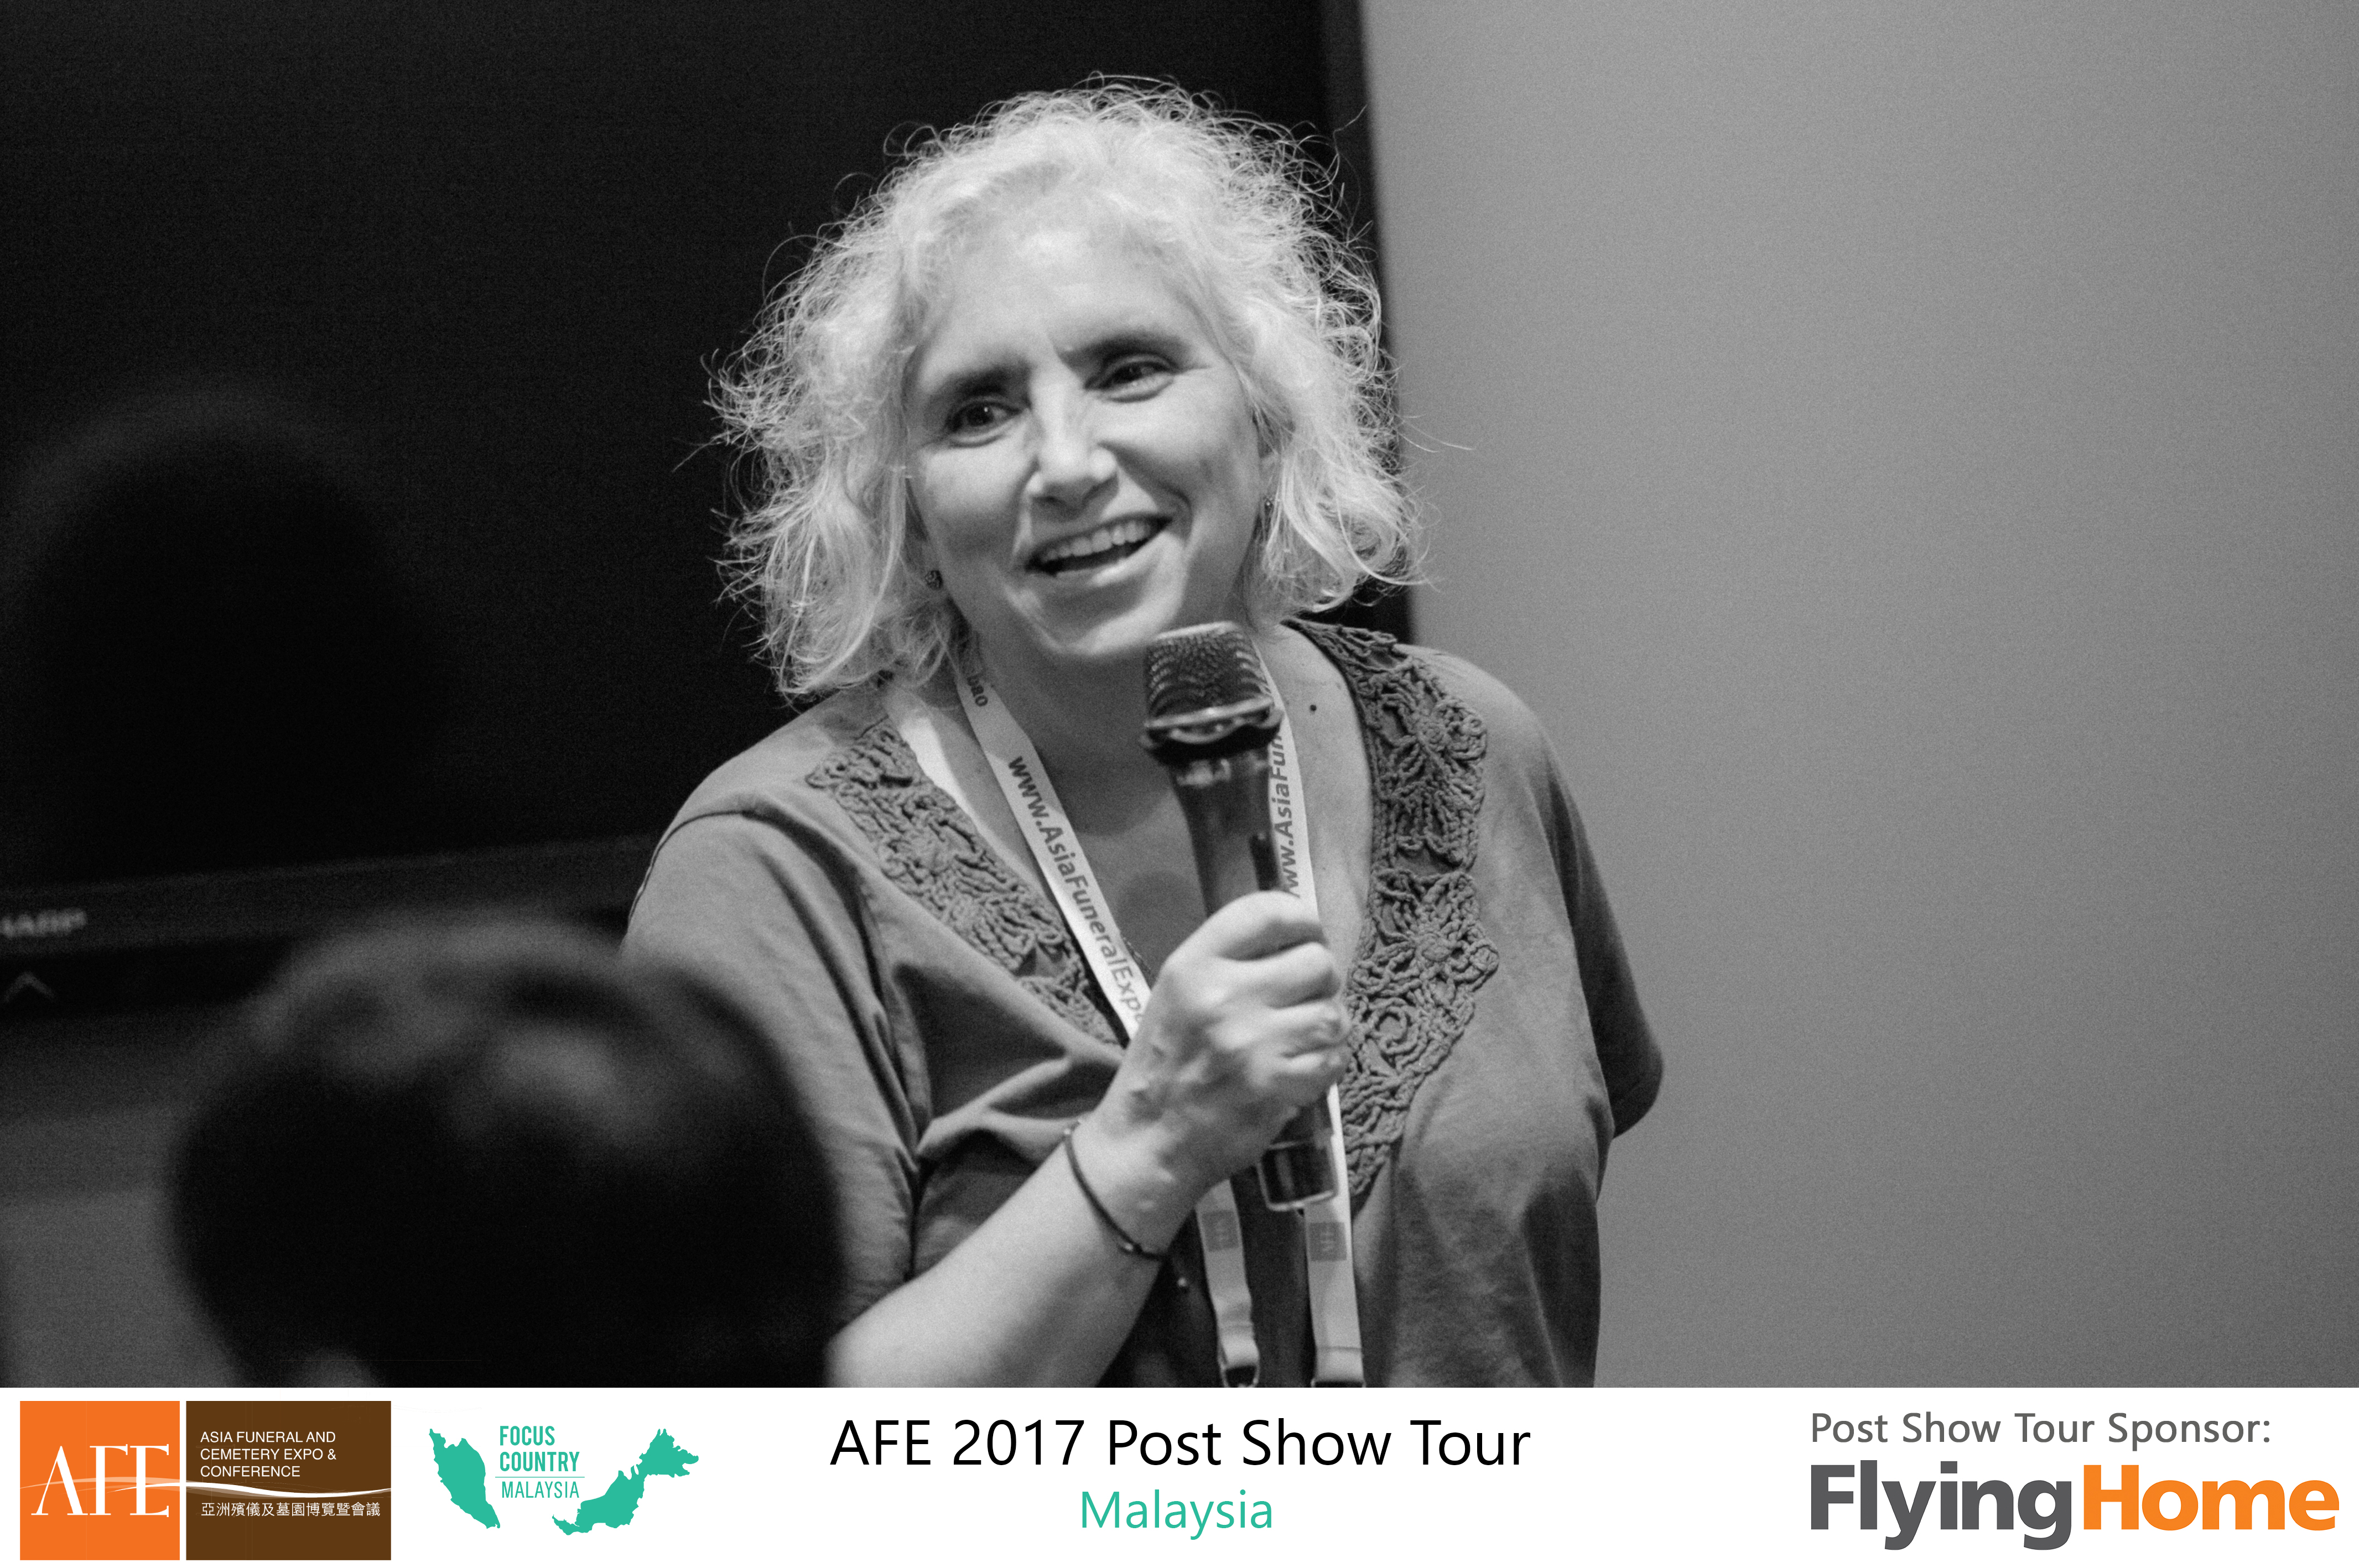 AFE Post Show Tour 2017 Day 1 - 14